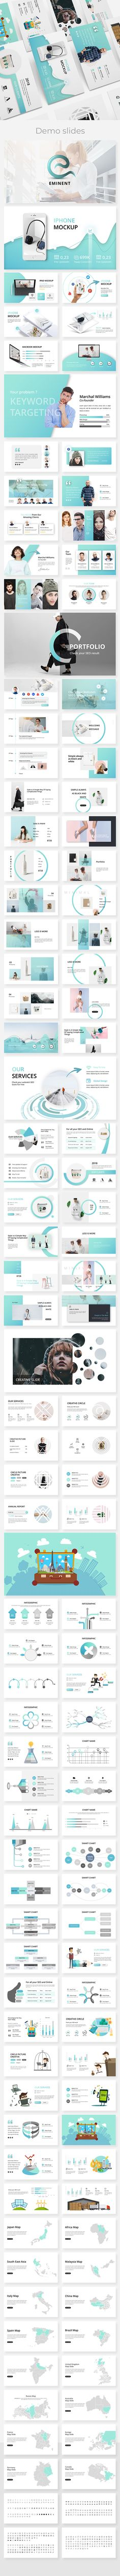 Eminent Creative Keynote Template